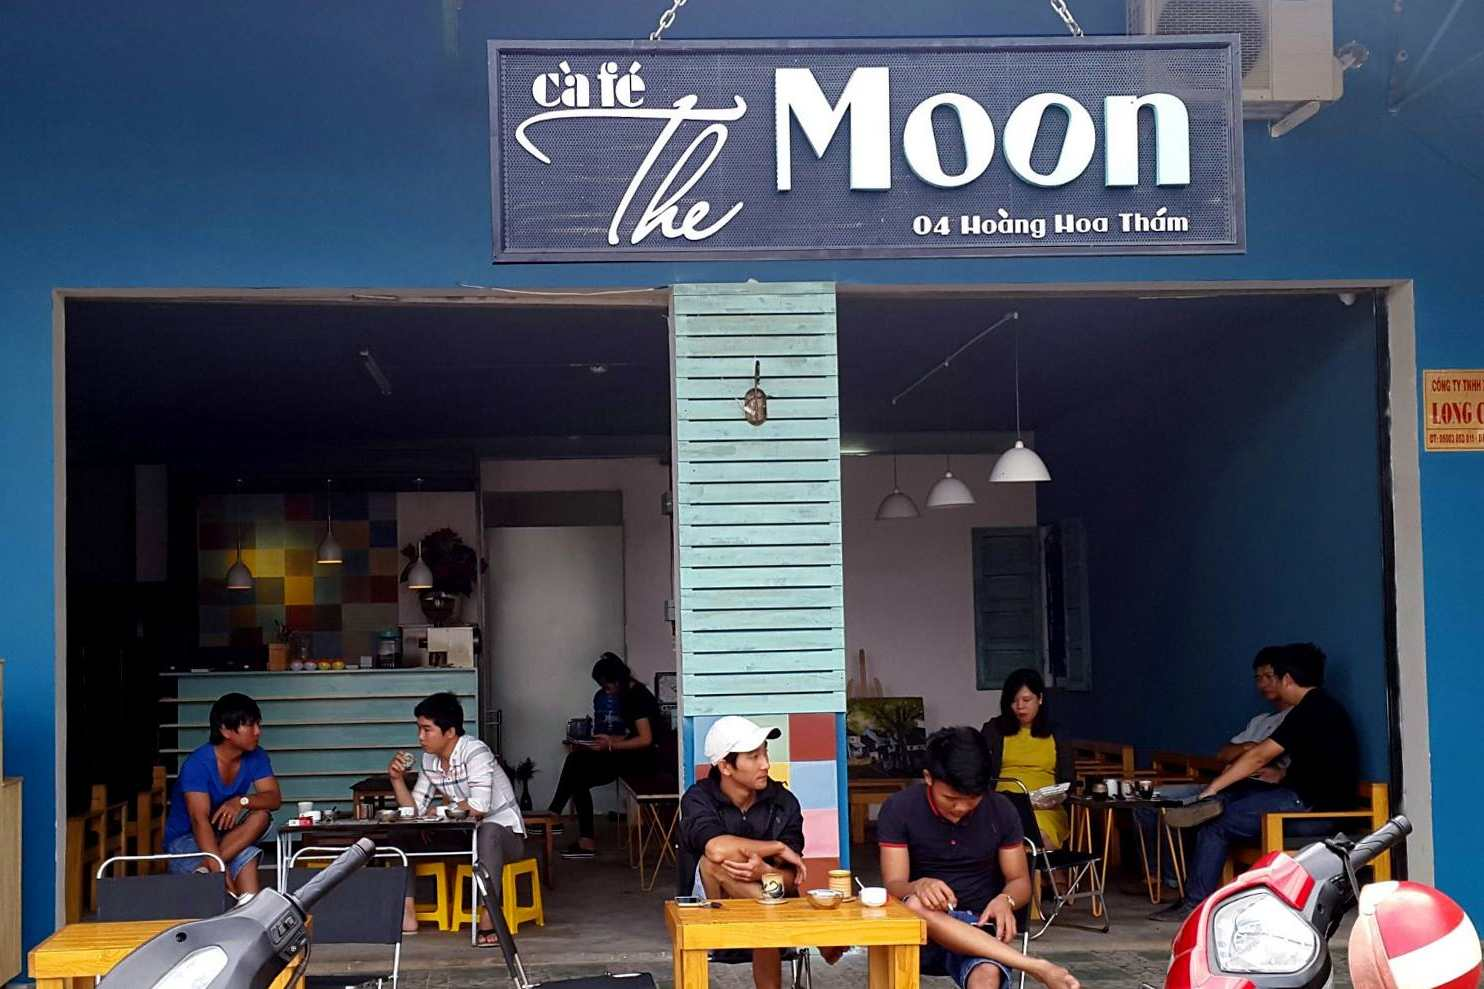 The moon cafe